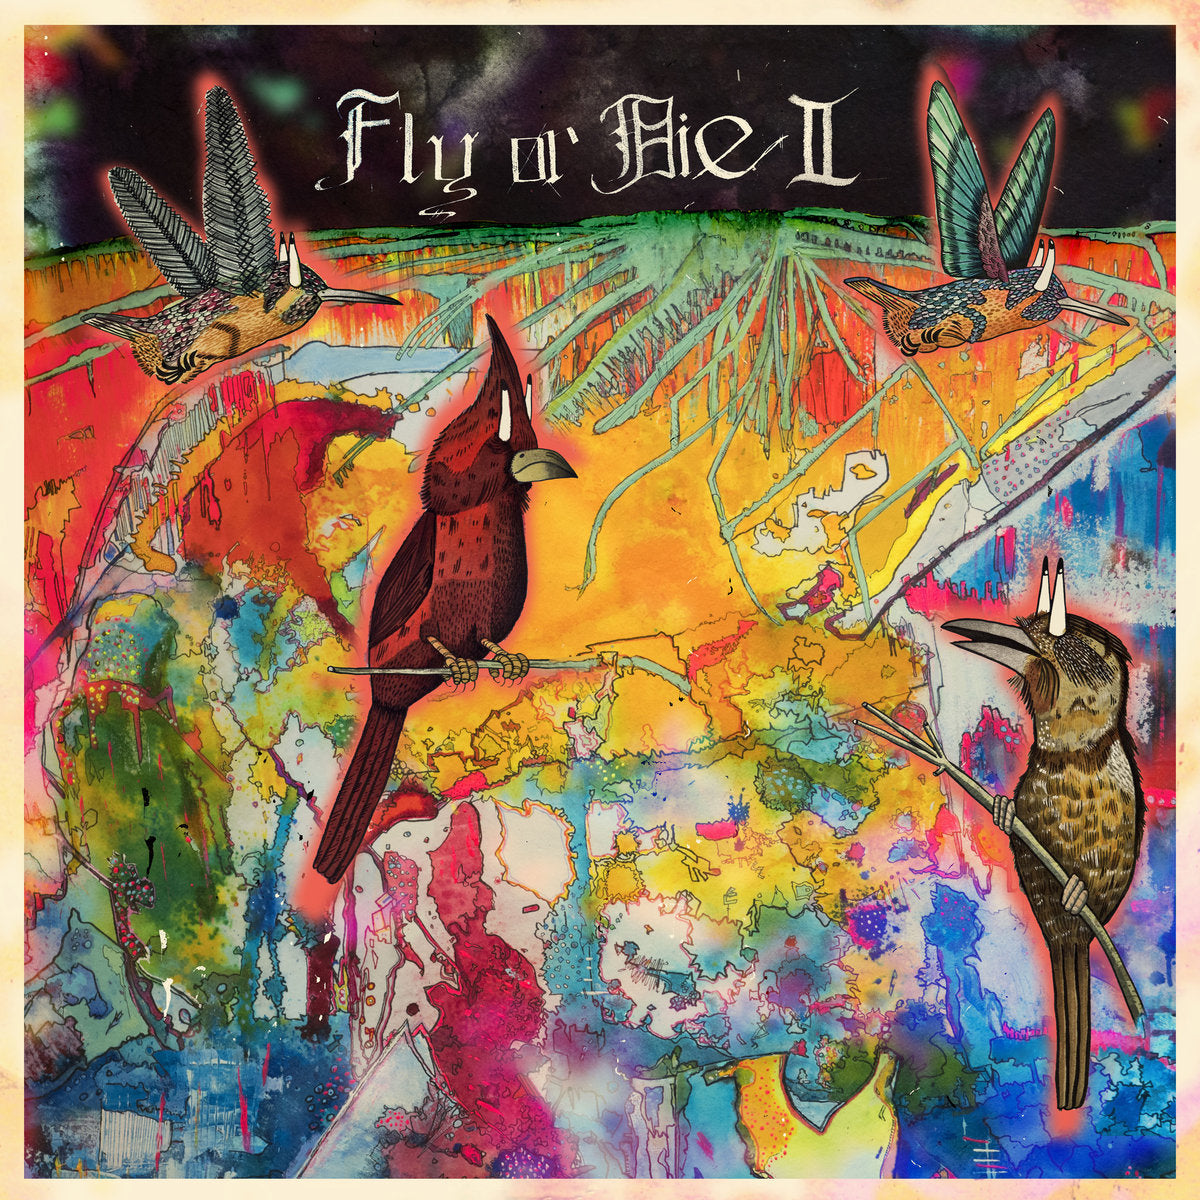 FLY or DIE II: bird dogs of paradise (New LP)